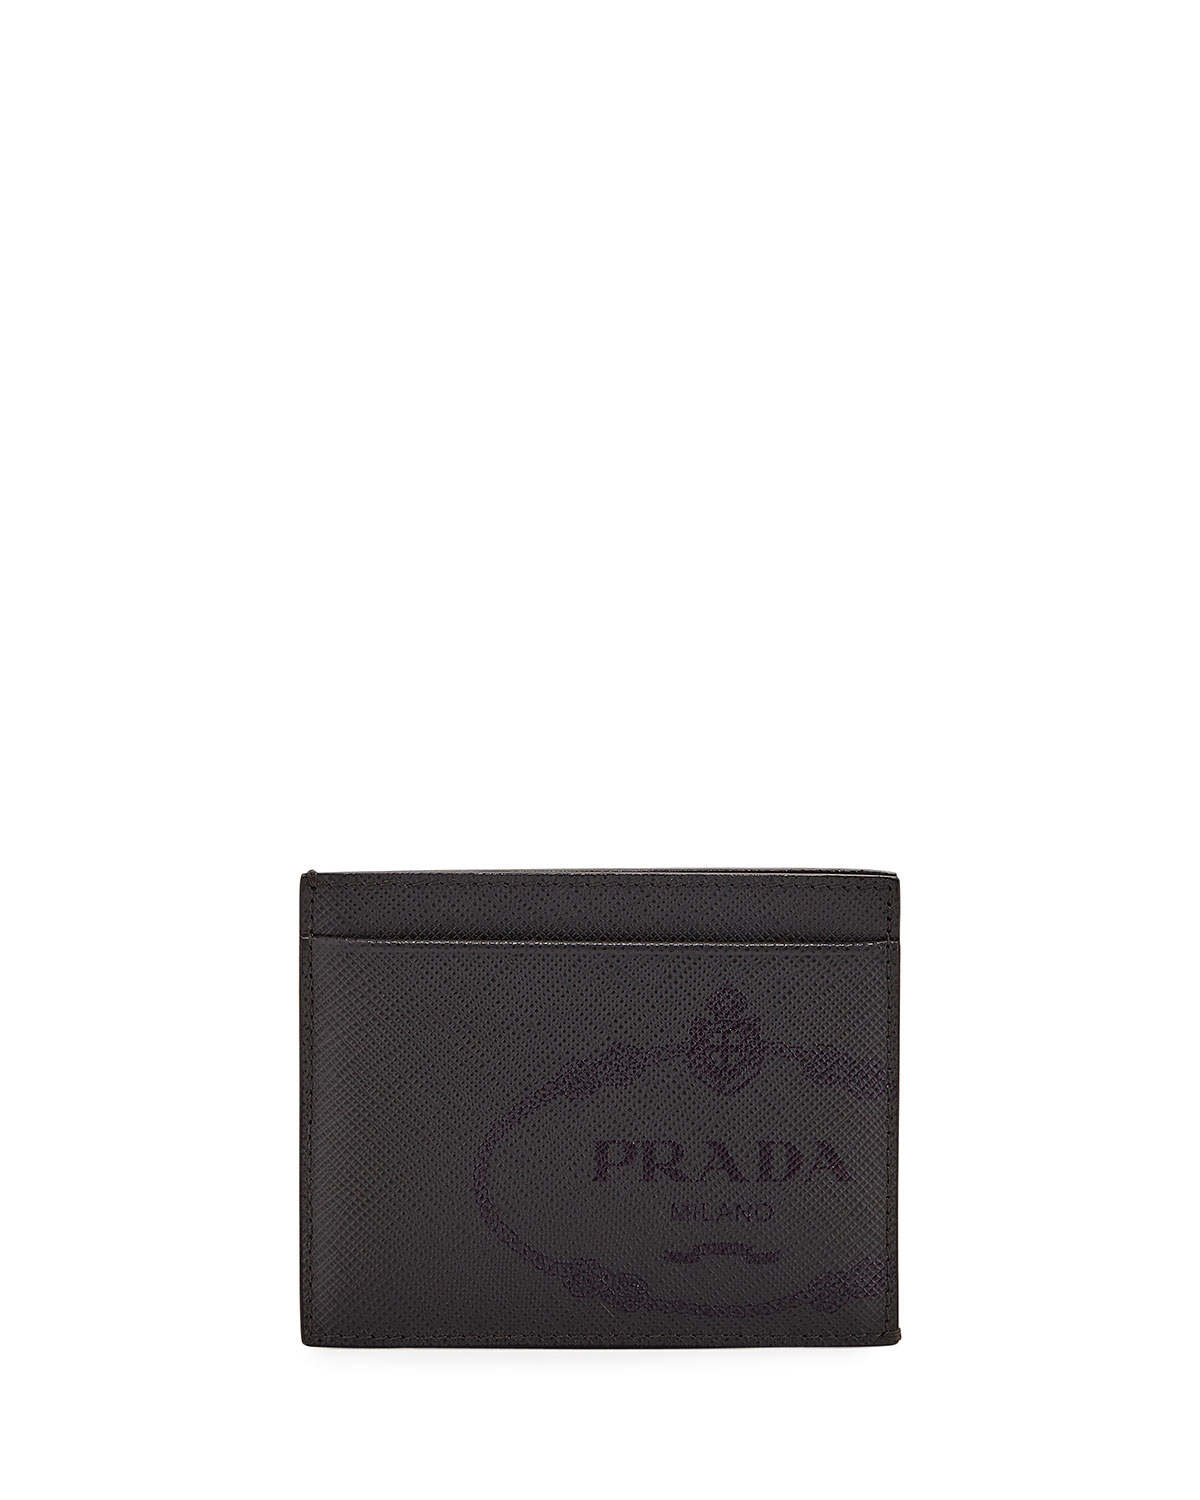 d832e2e59ae379 Prada Men's Saffiano Leather Card Case with Savoia Logo | Neiman Marcus